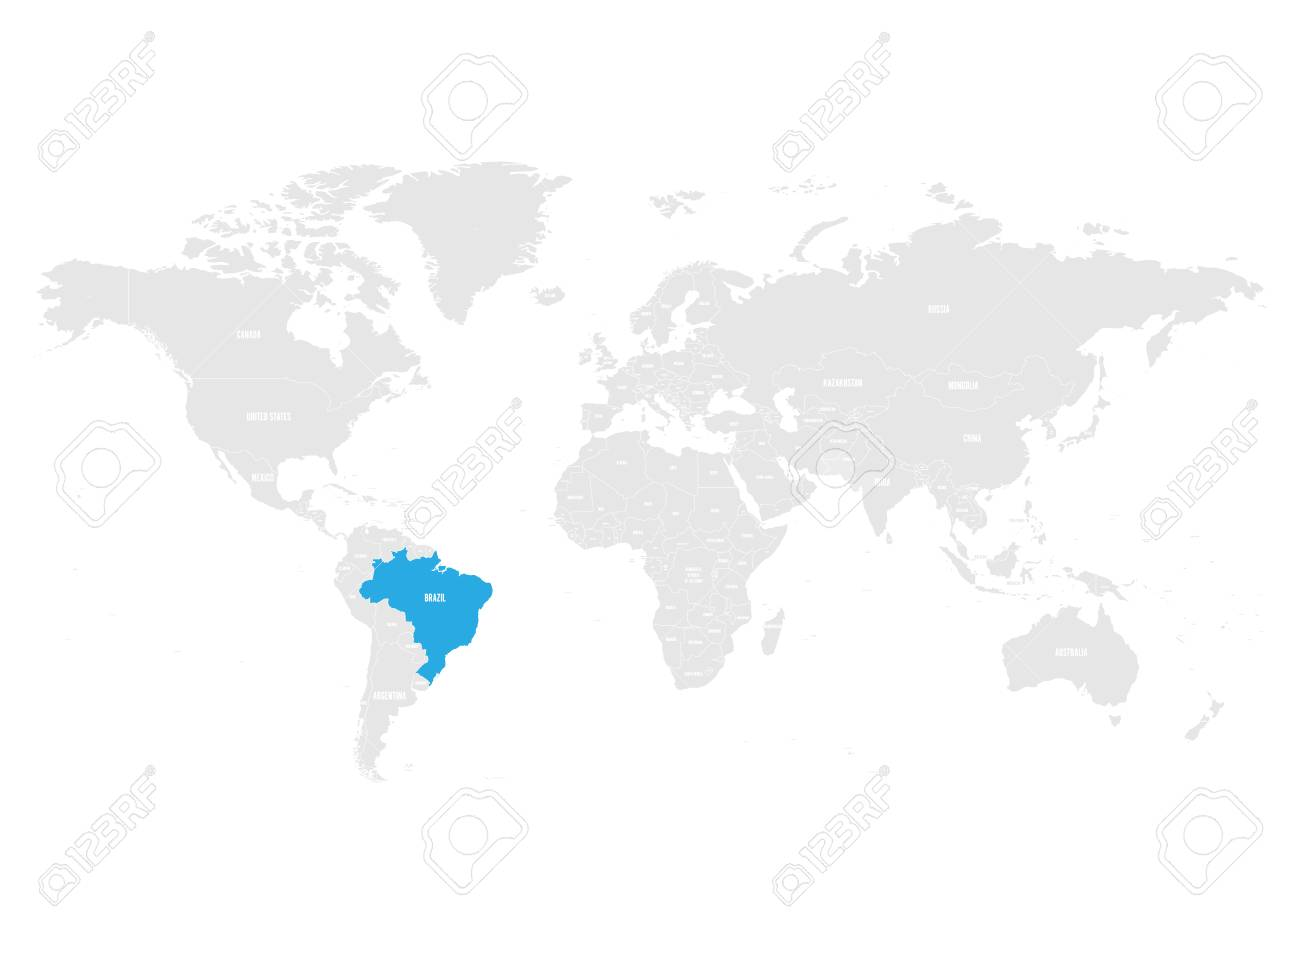 Brazil marked by blue in grey World political map. Vector illustration.